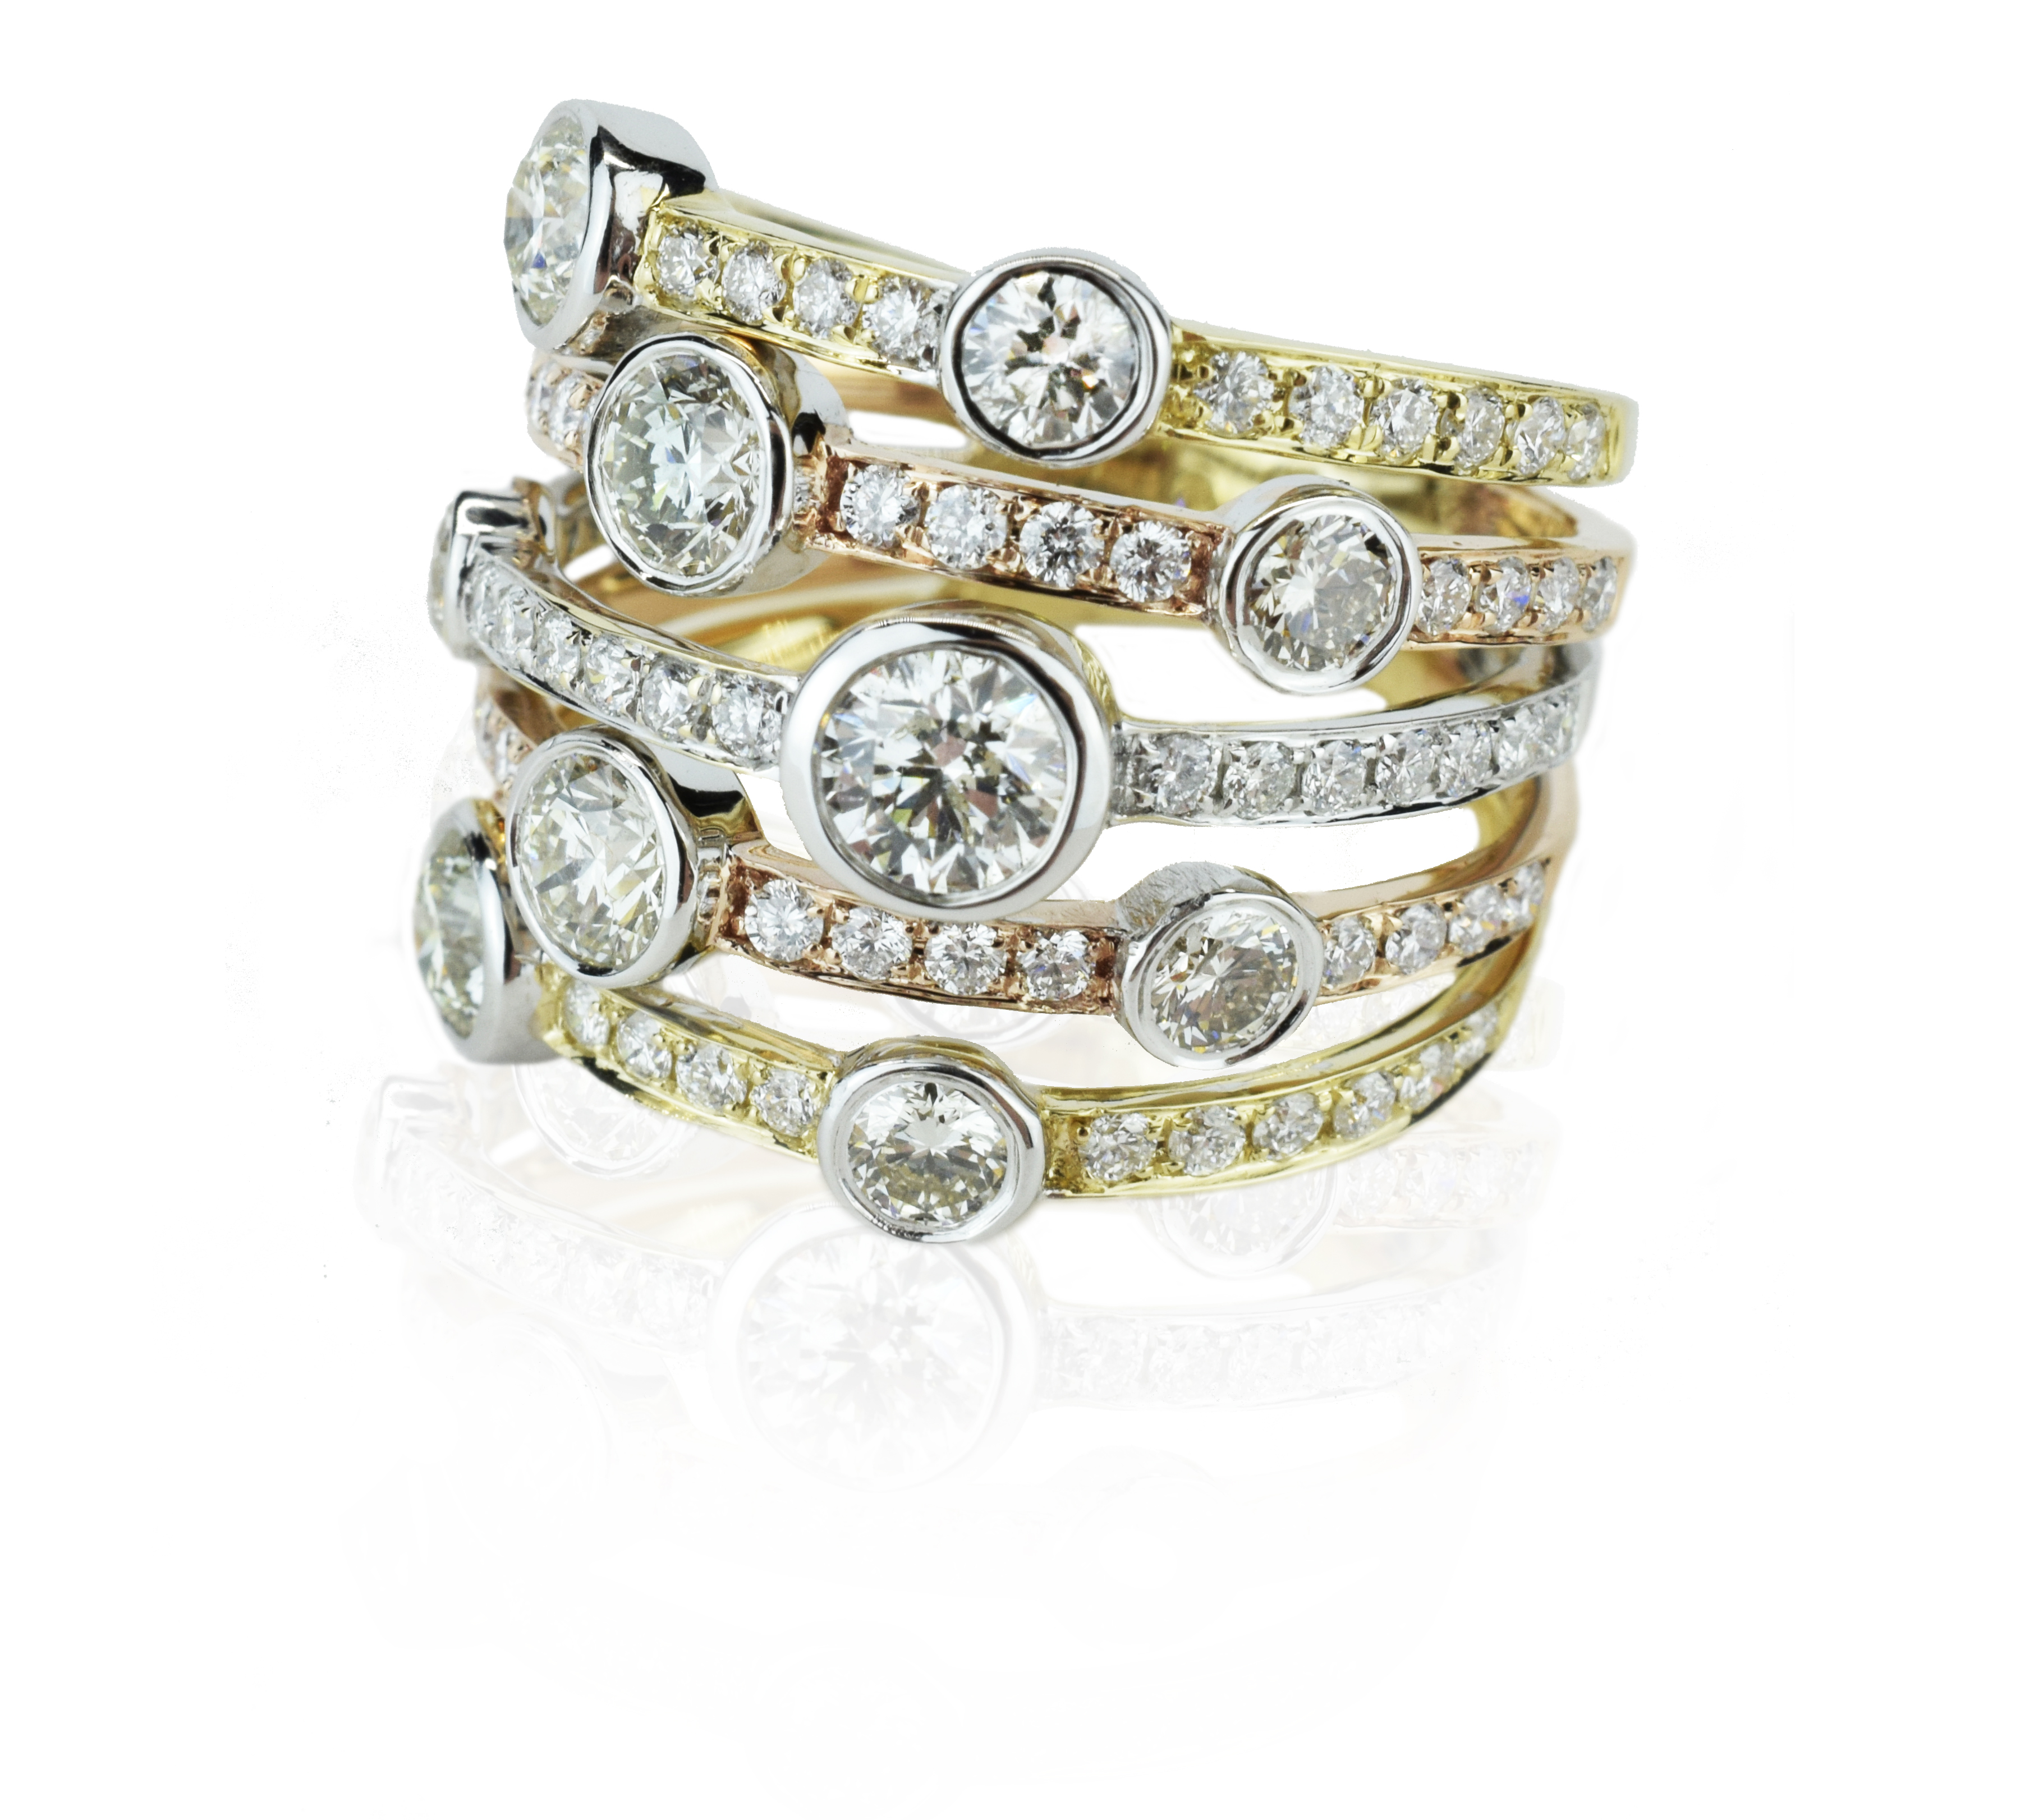 Tritone diamond stack ring